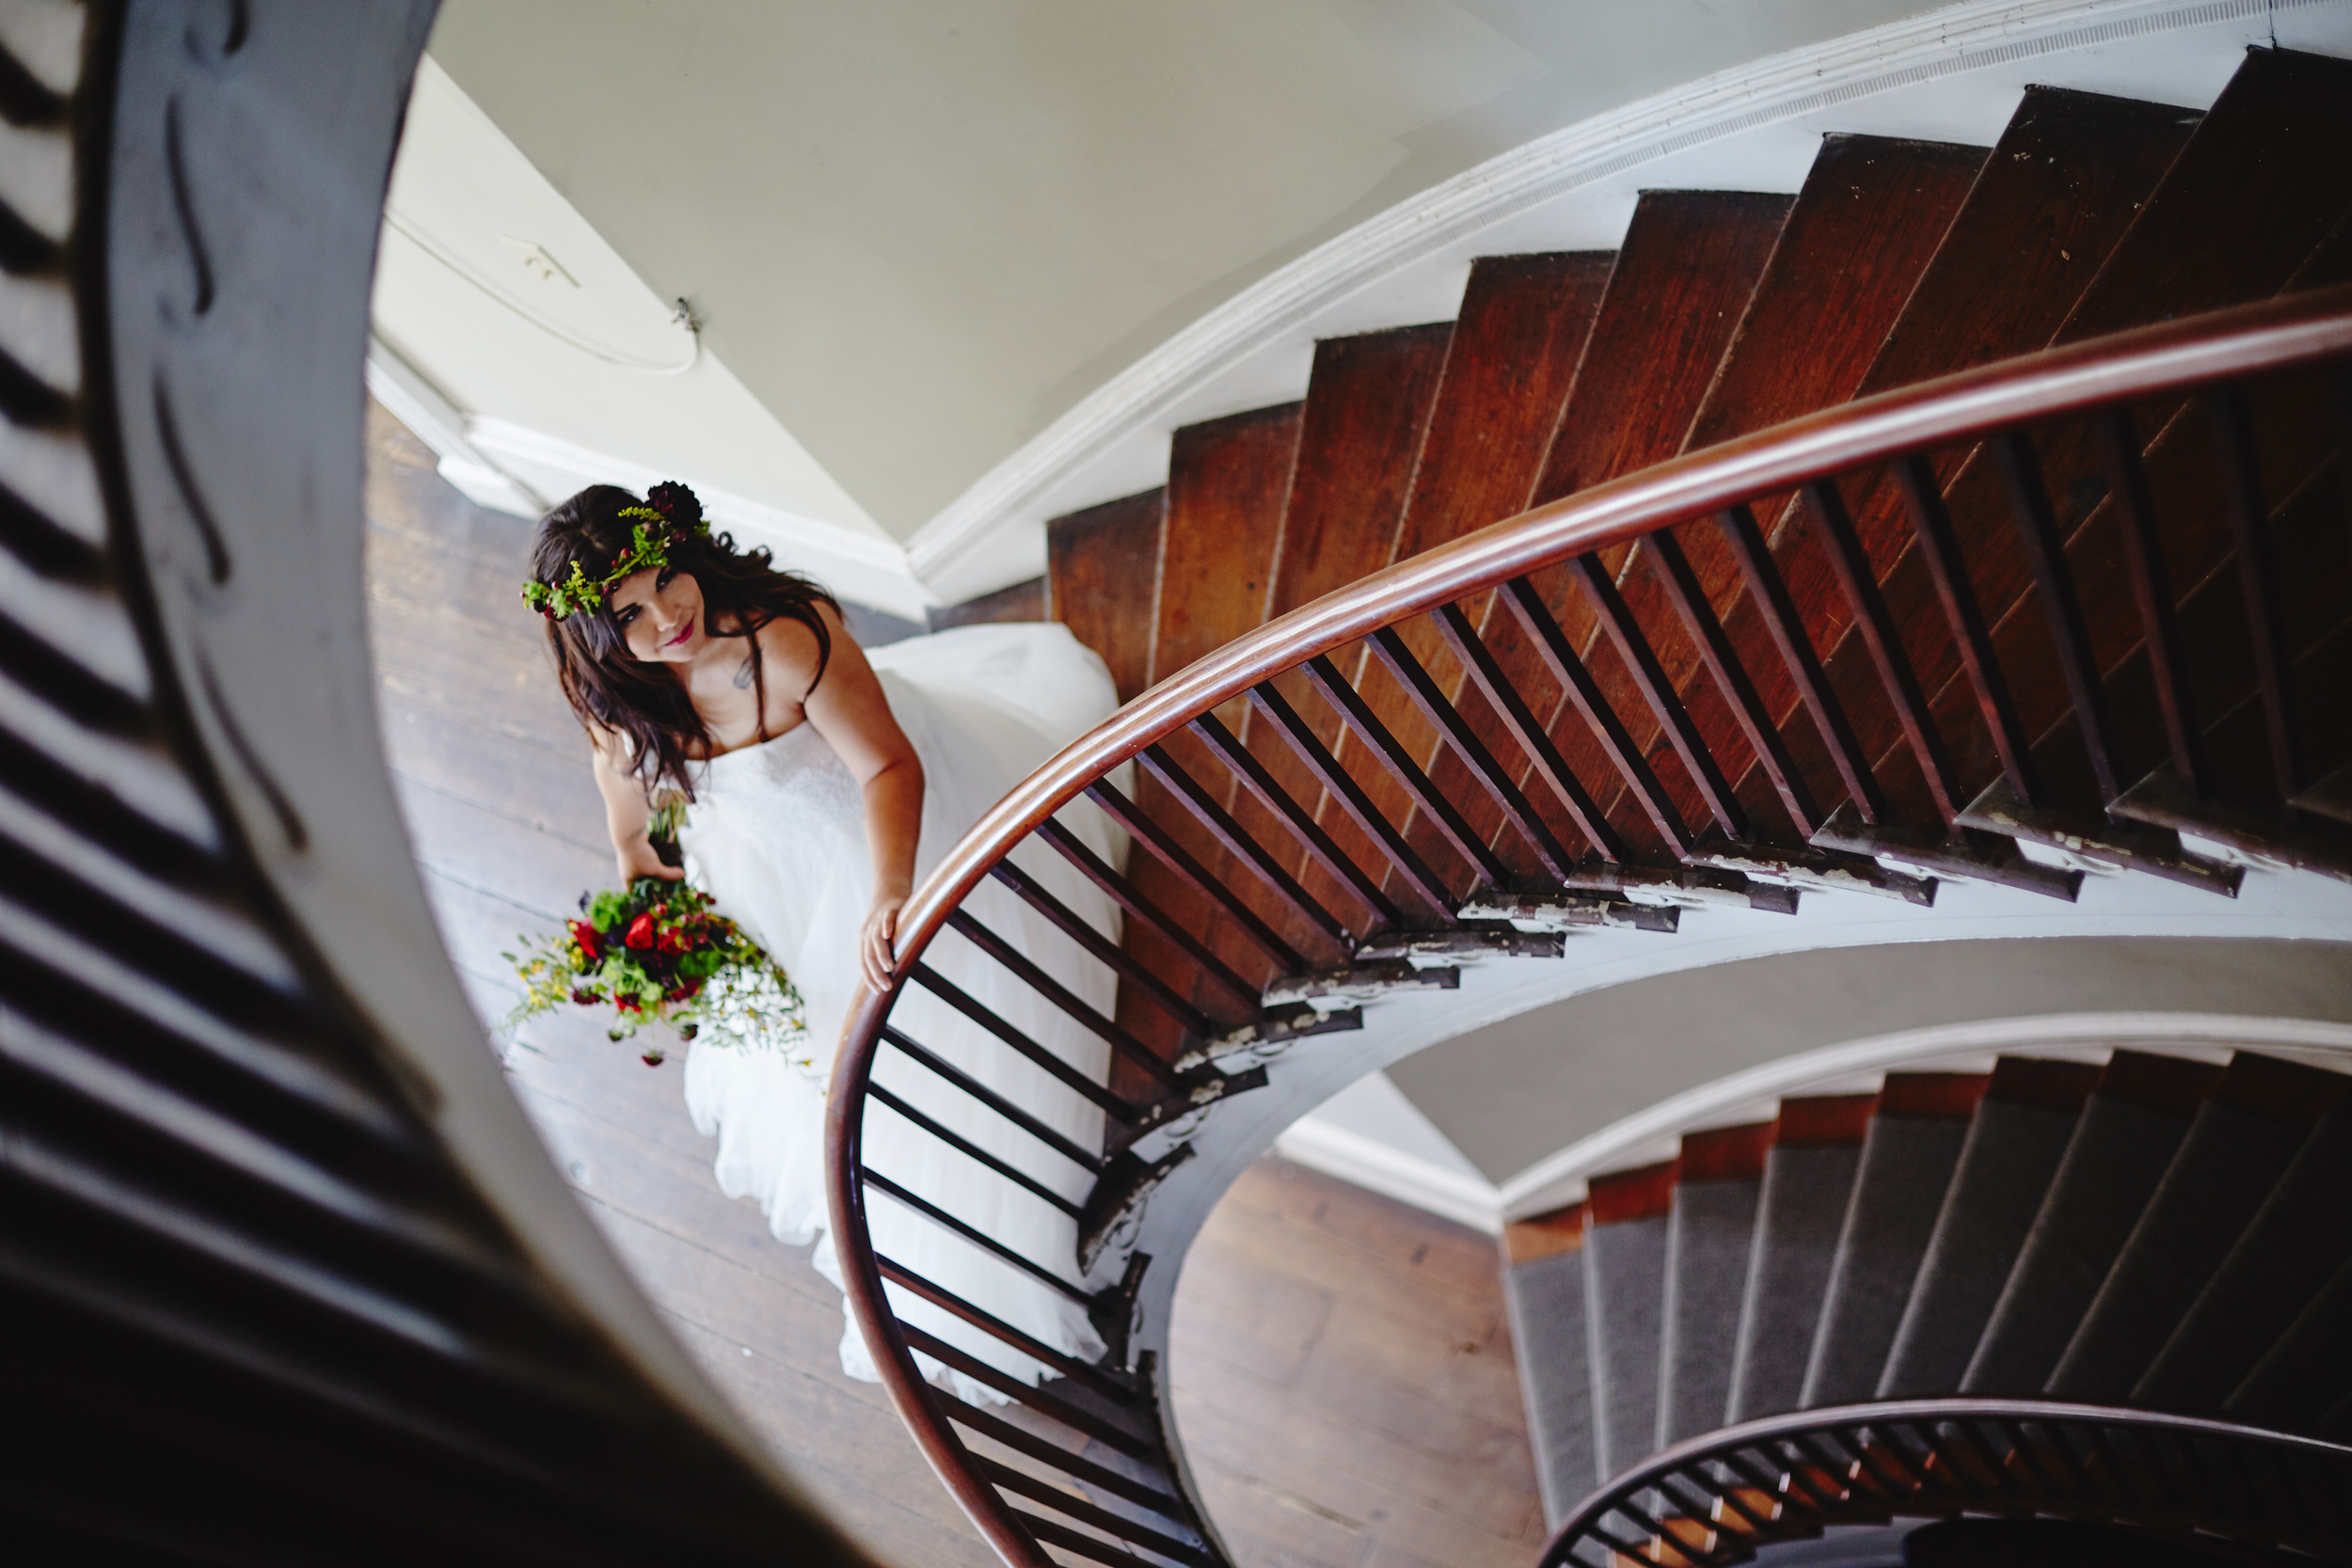 Styled_Session_Cherie_Bridal_Portraits_House_of_the_Bride 51.jpg